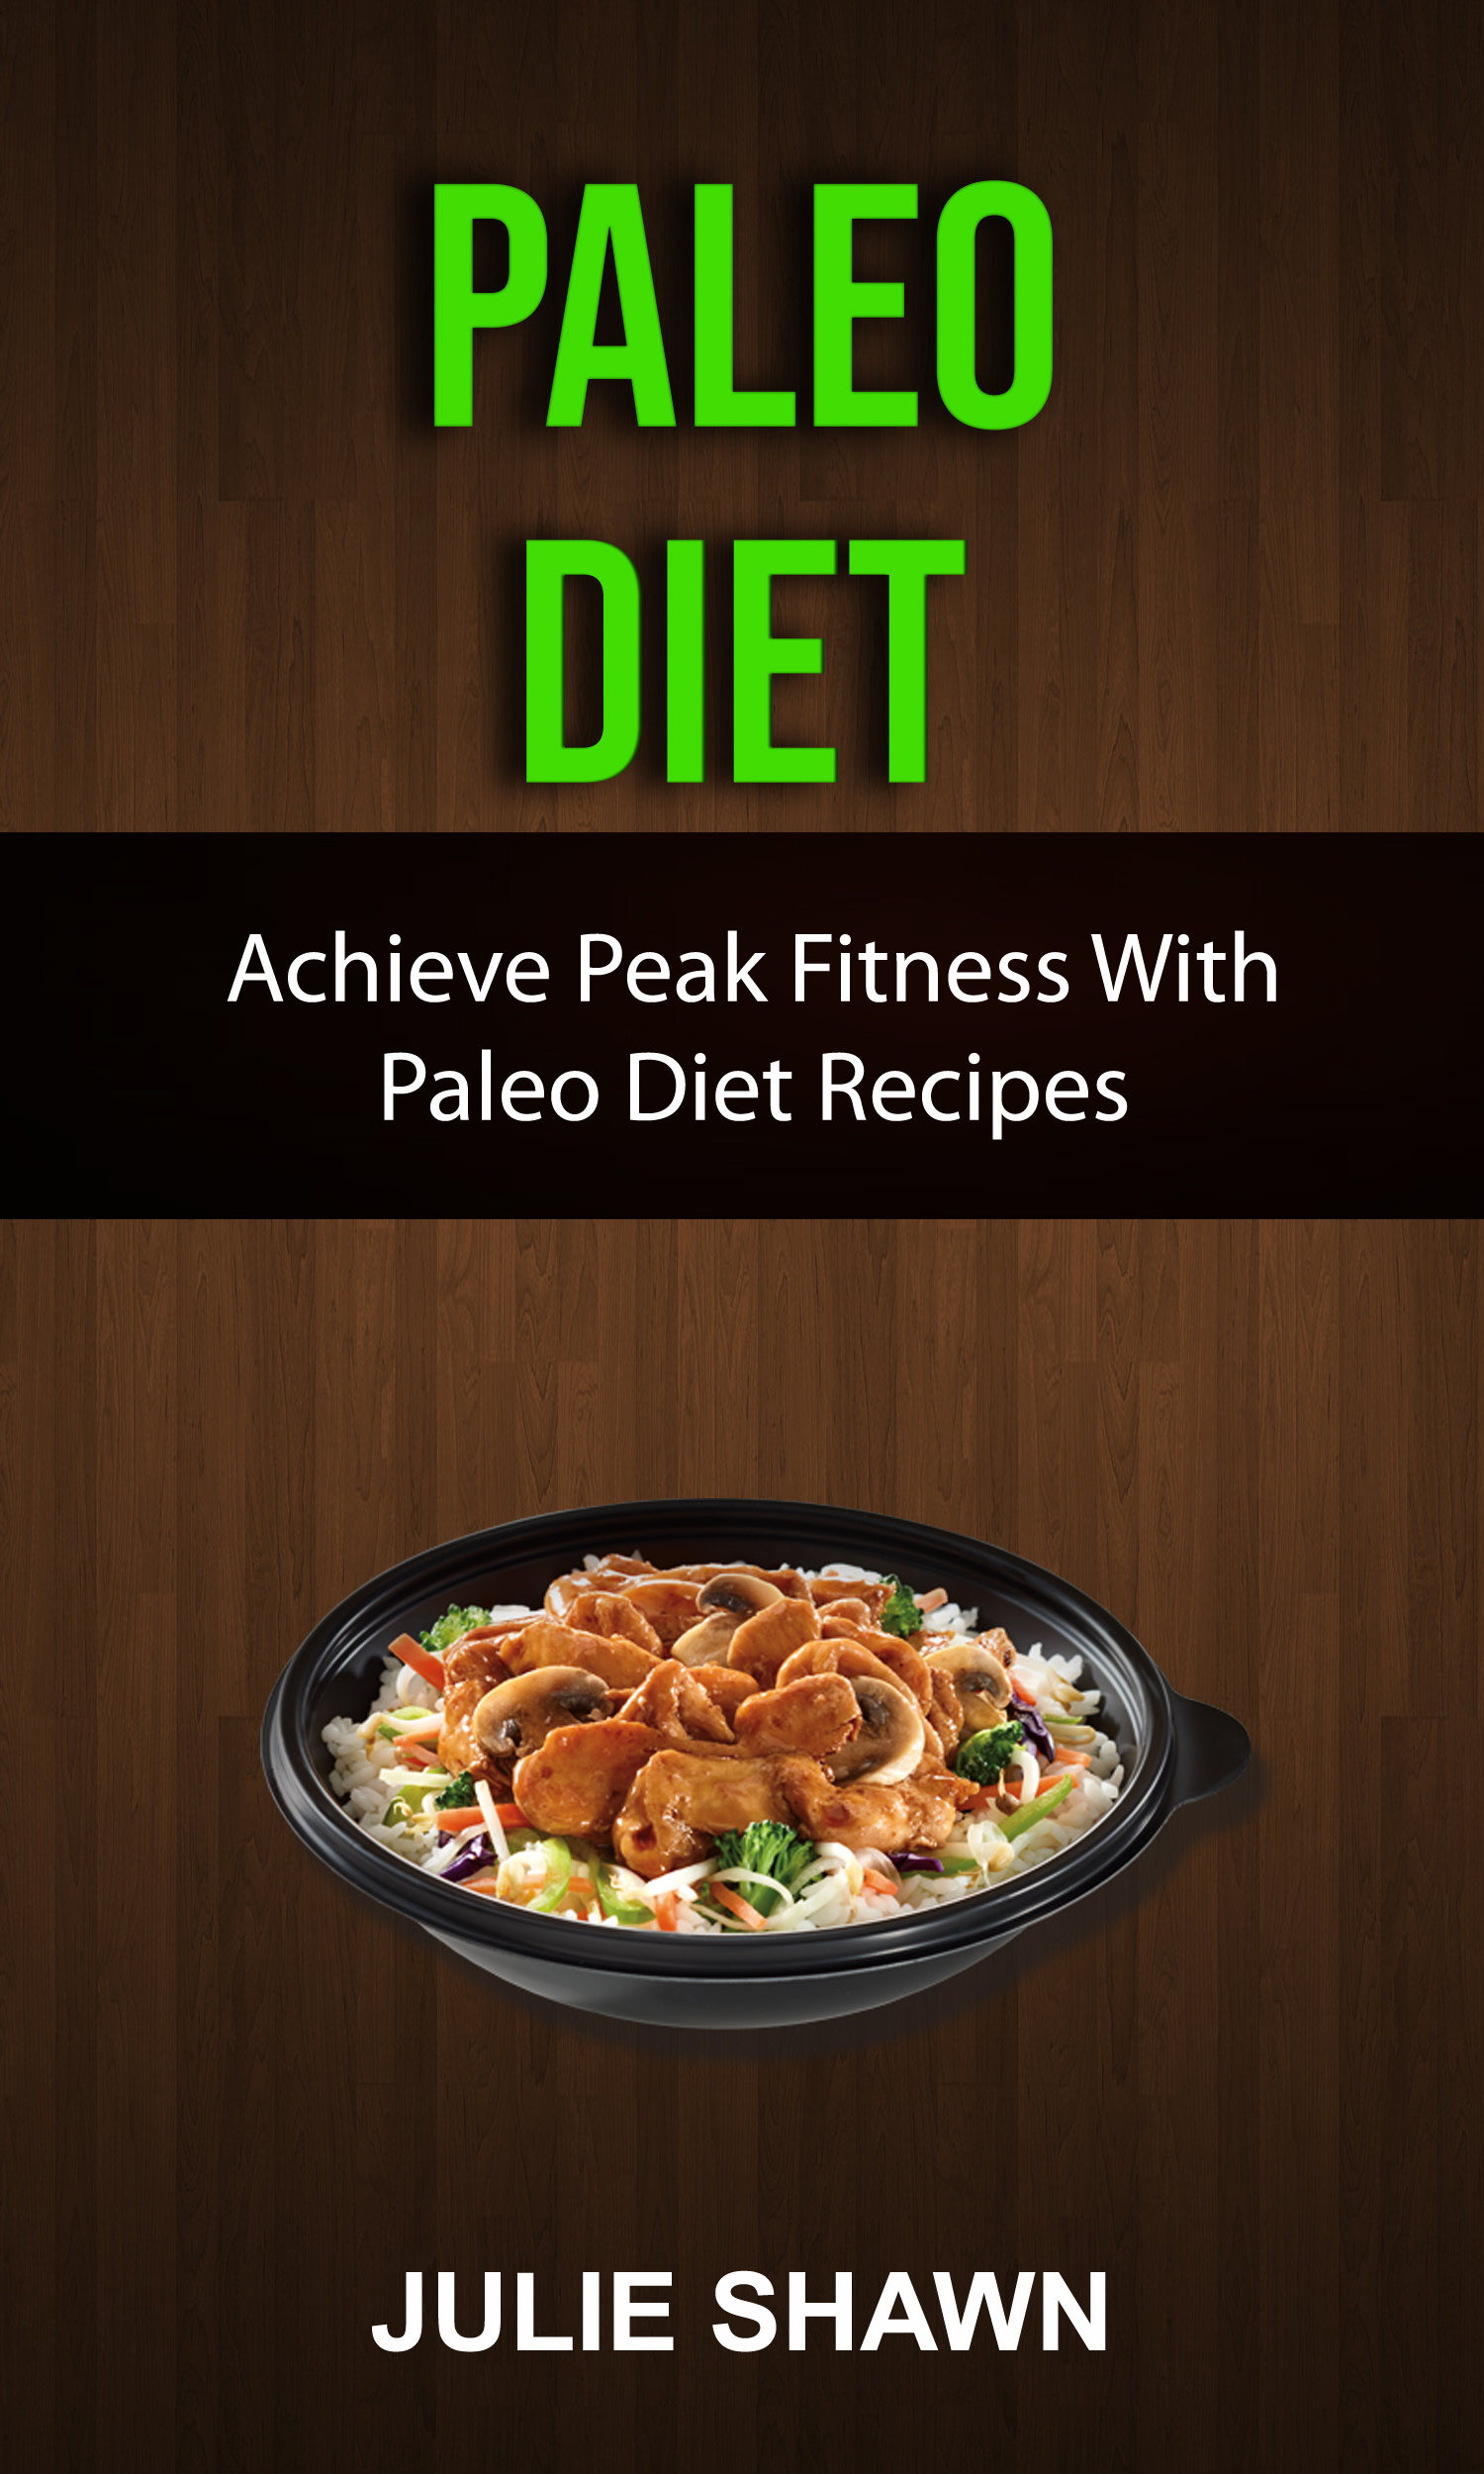 Paleo diet: achieve peak fitness with paleo diet recipes